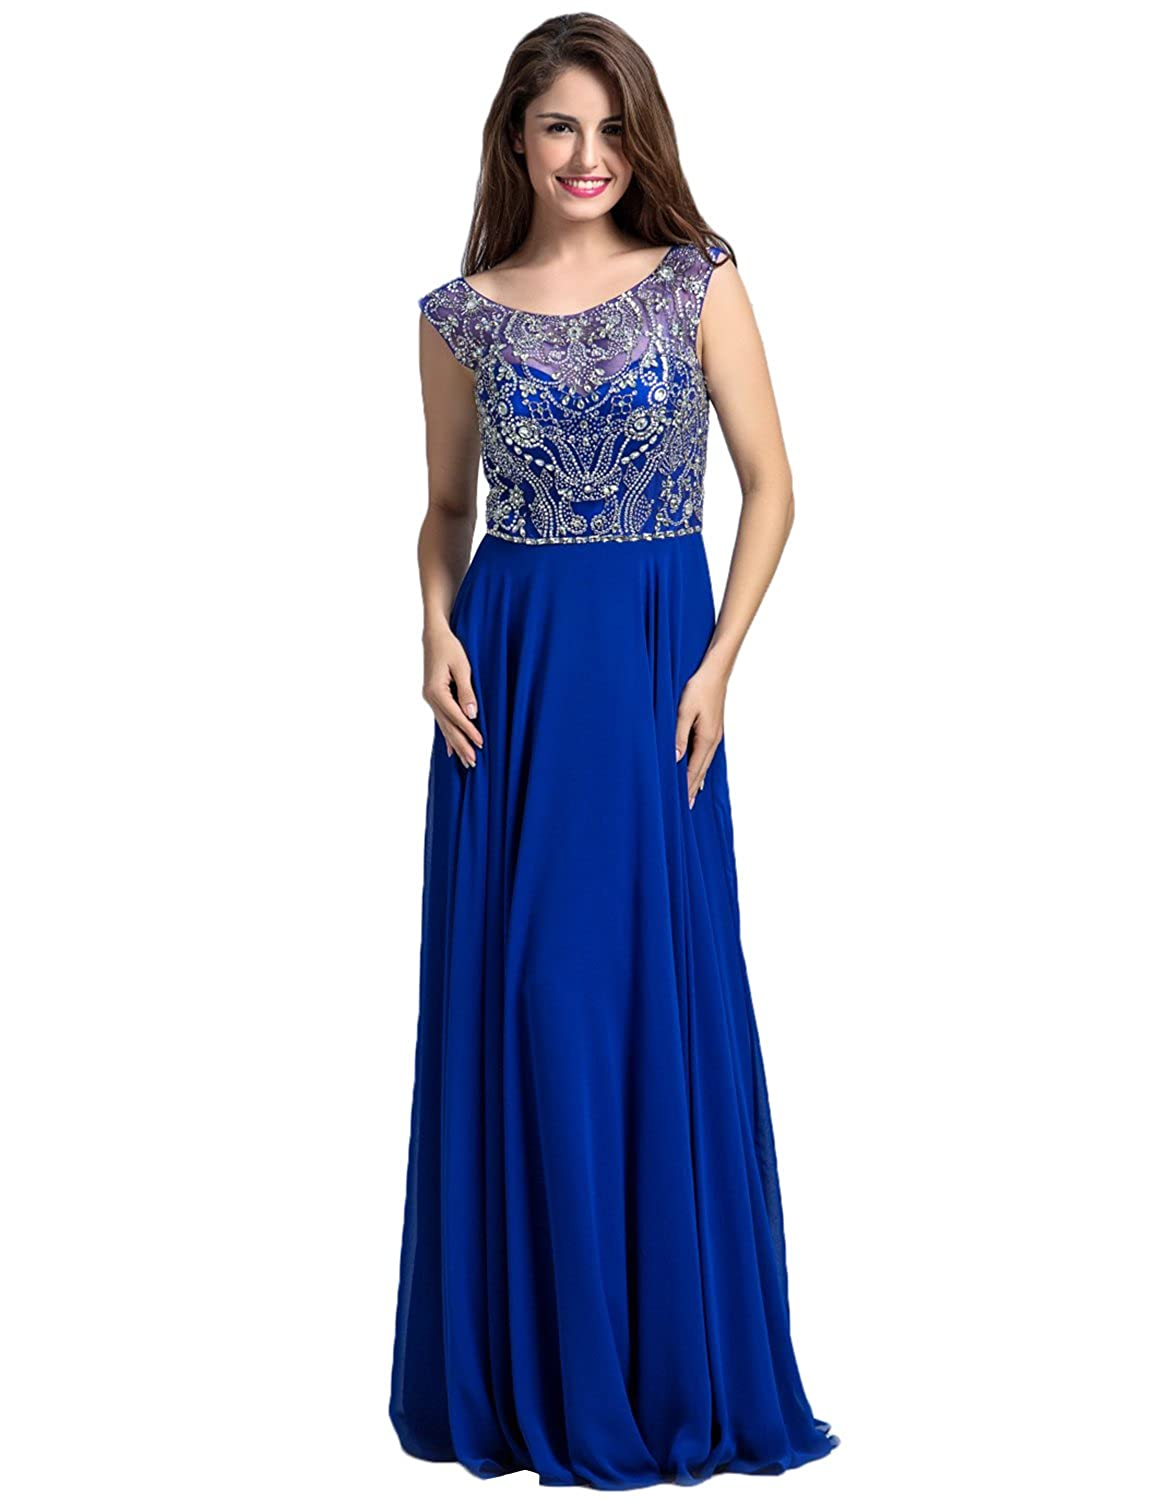 Clearbridal Women's Royal Blue Chiffon Prom Dress Long Round Neck Evening Gown with Crystal LX087